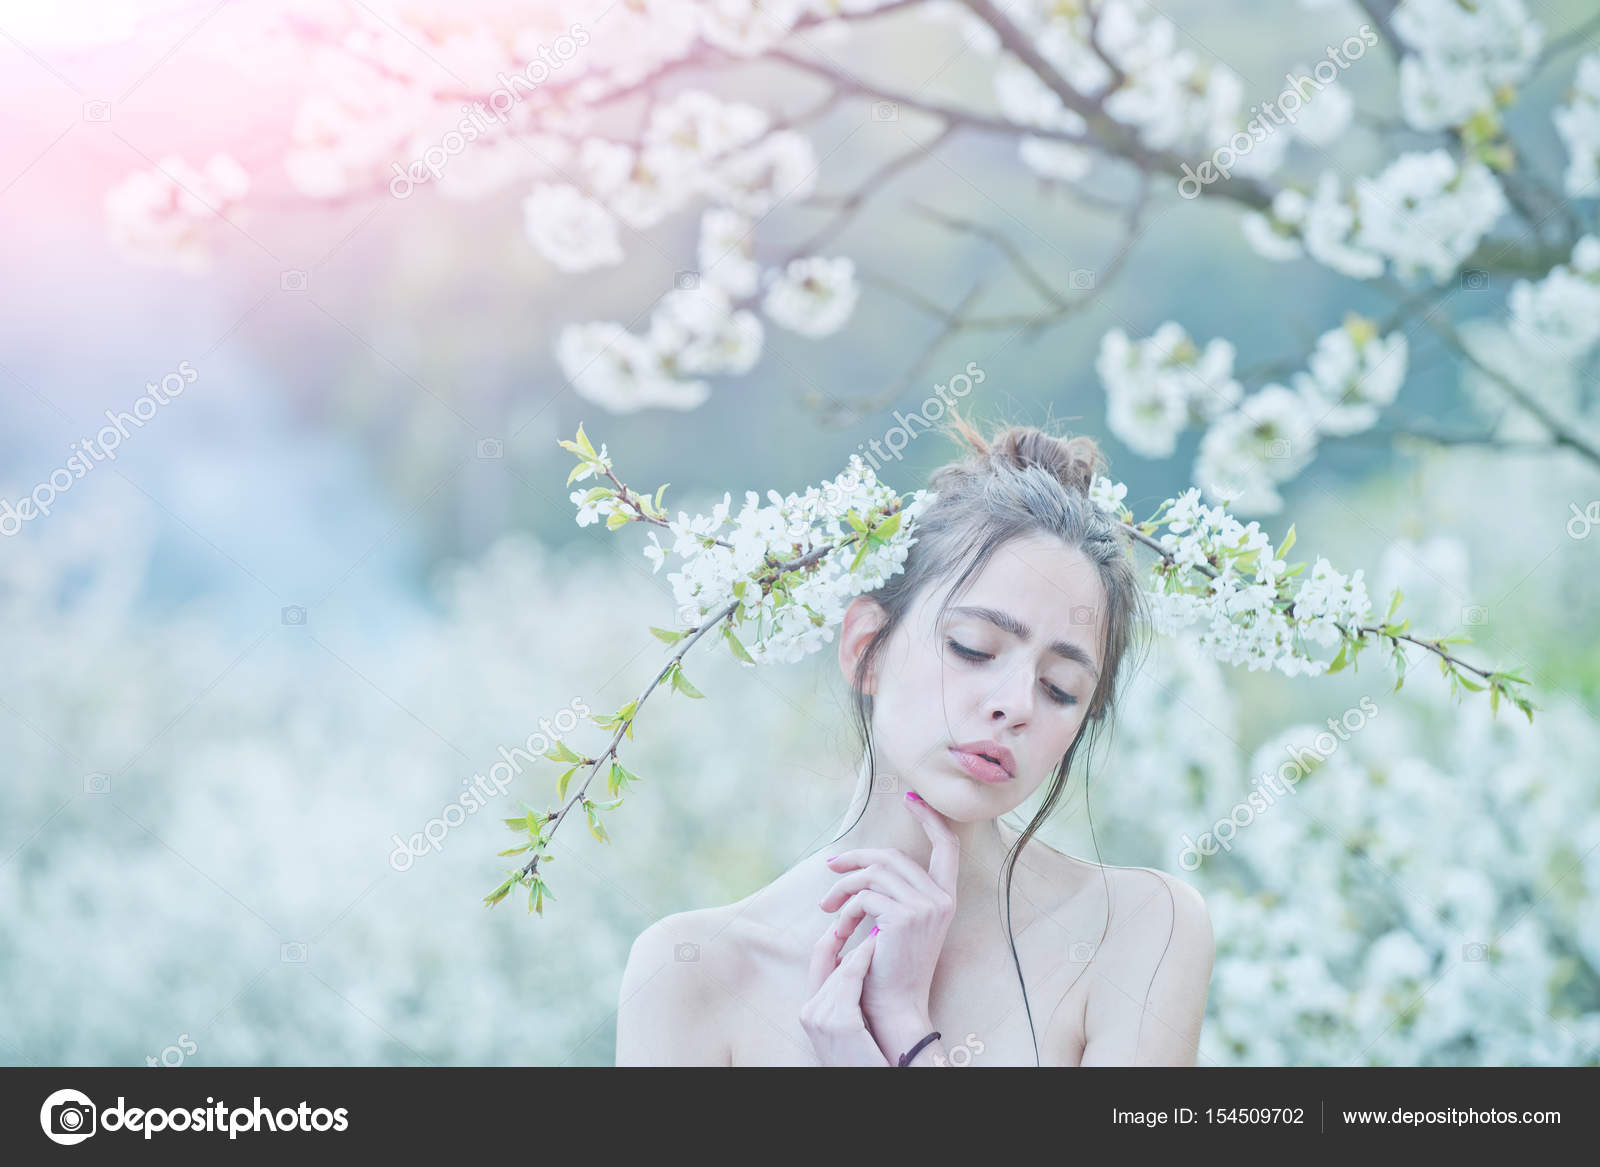 Girl With Closed Eyes And White Flowers In Hair Stock Photo